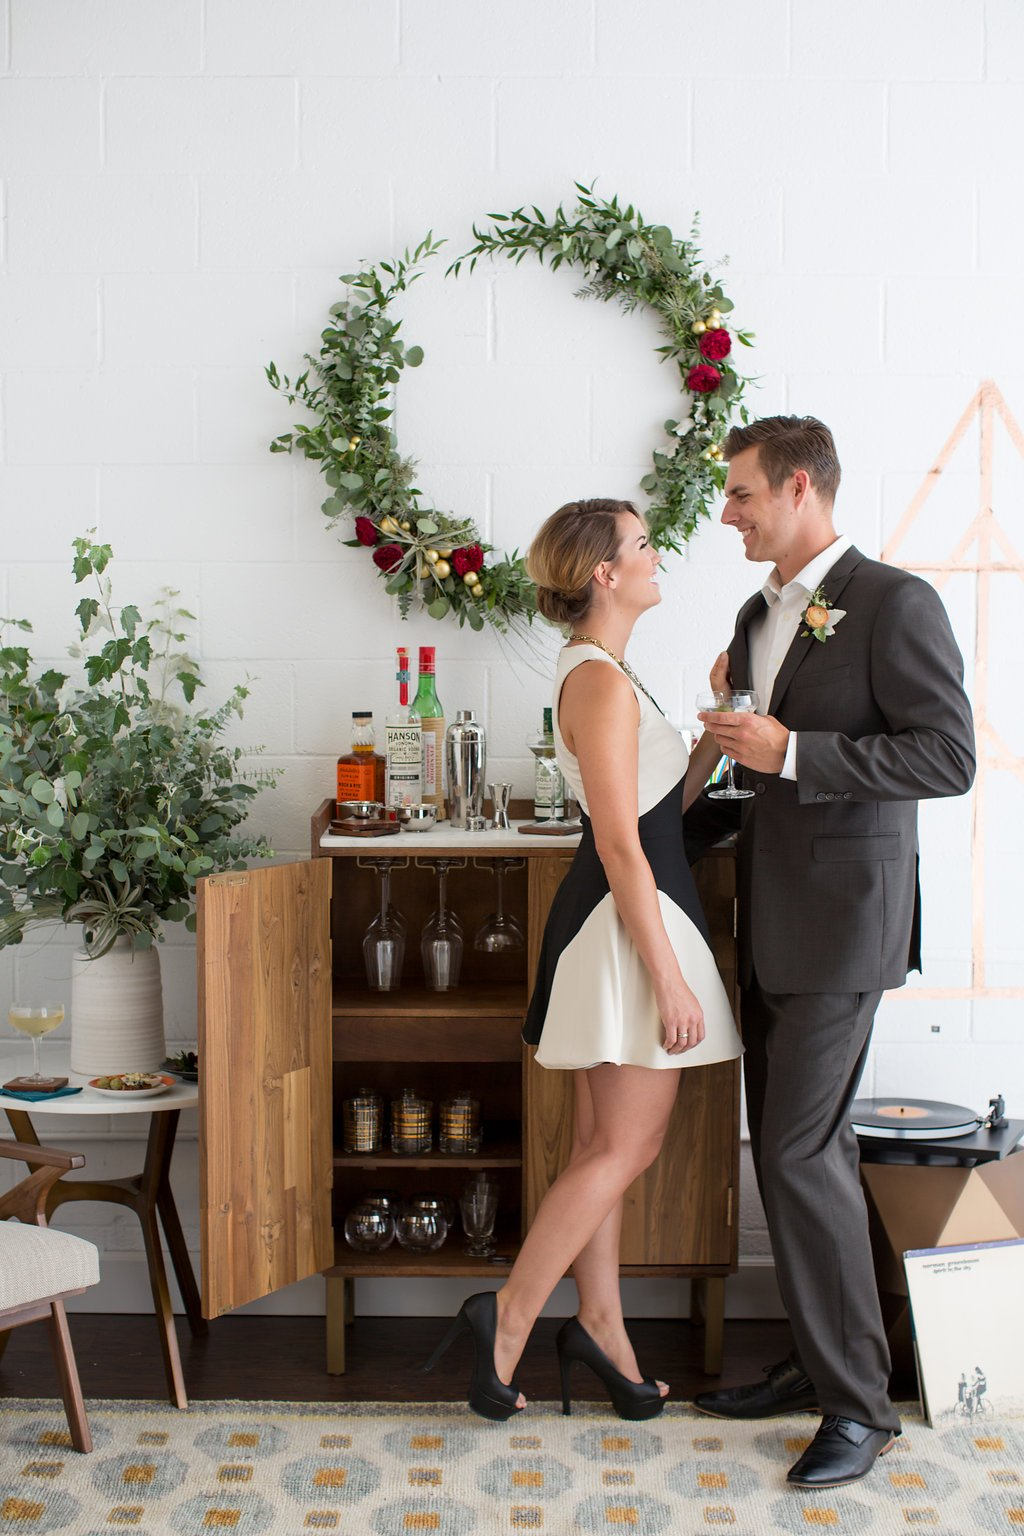 man and woman dressup up enjoying a martini in front of a bar cart